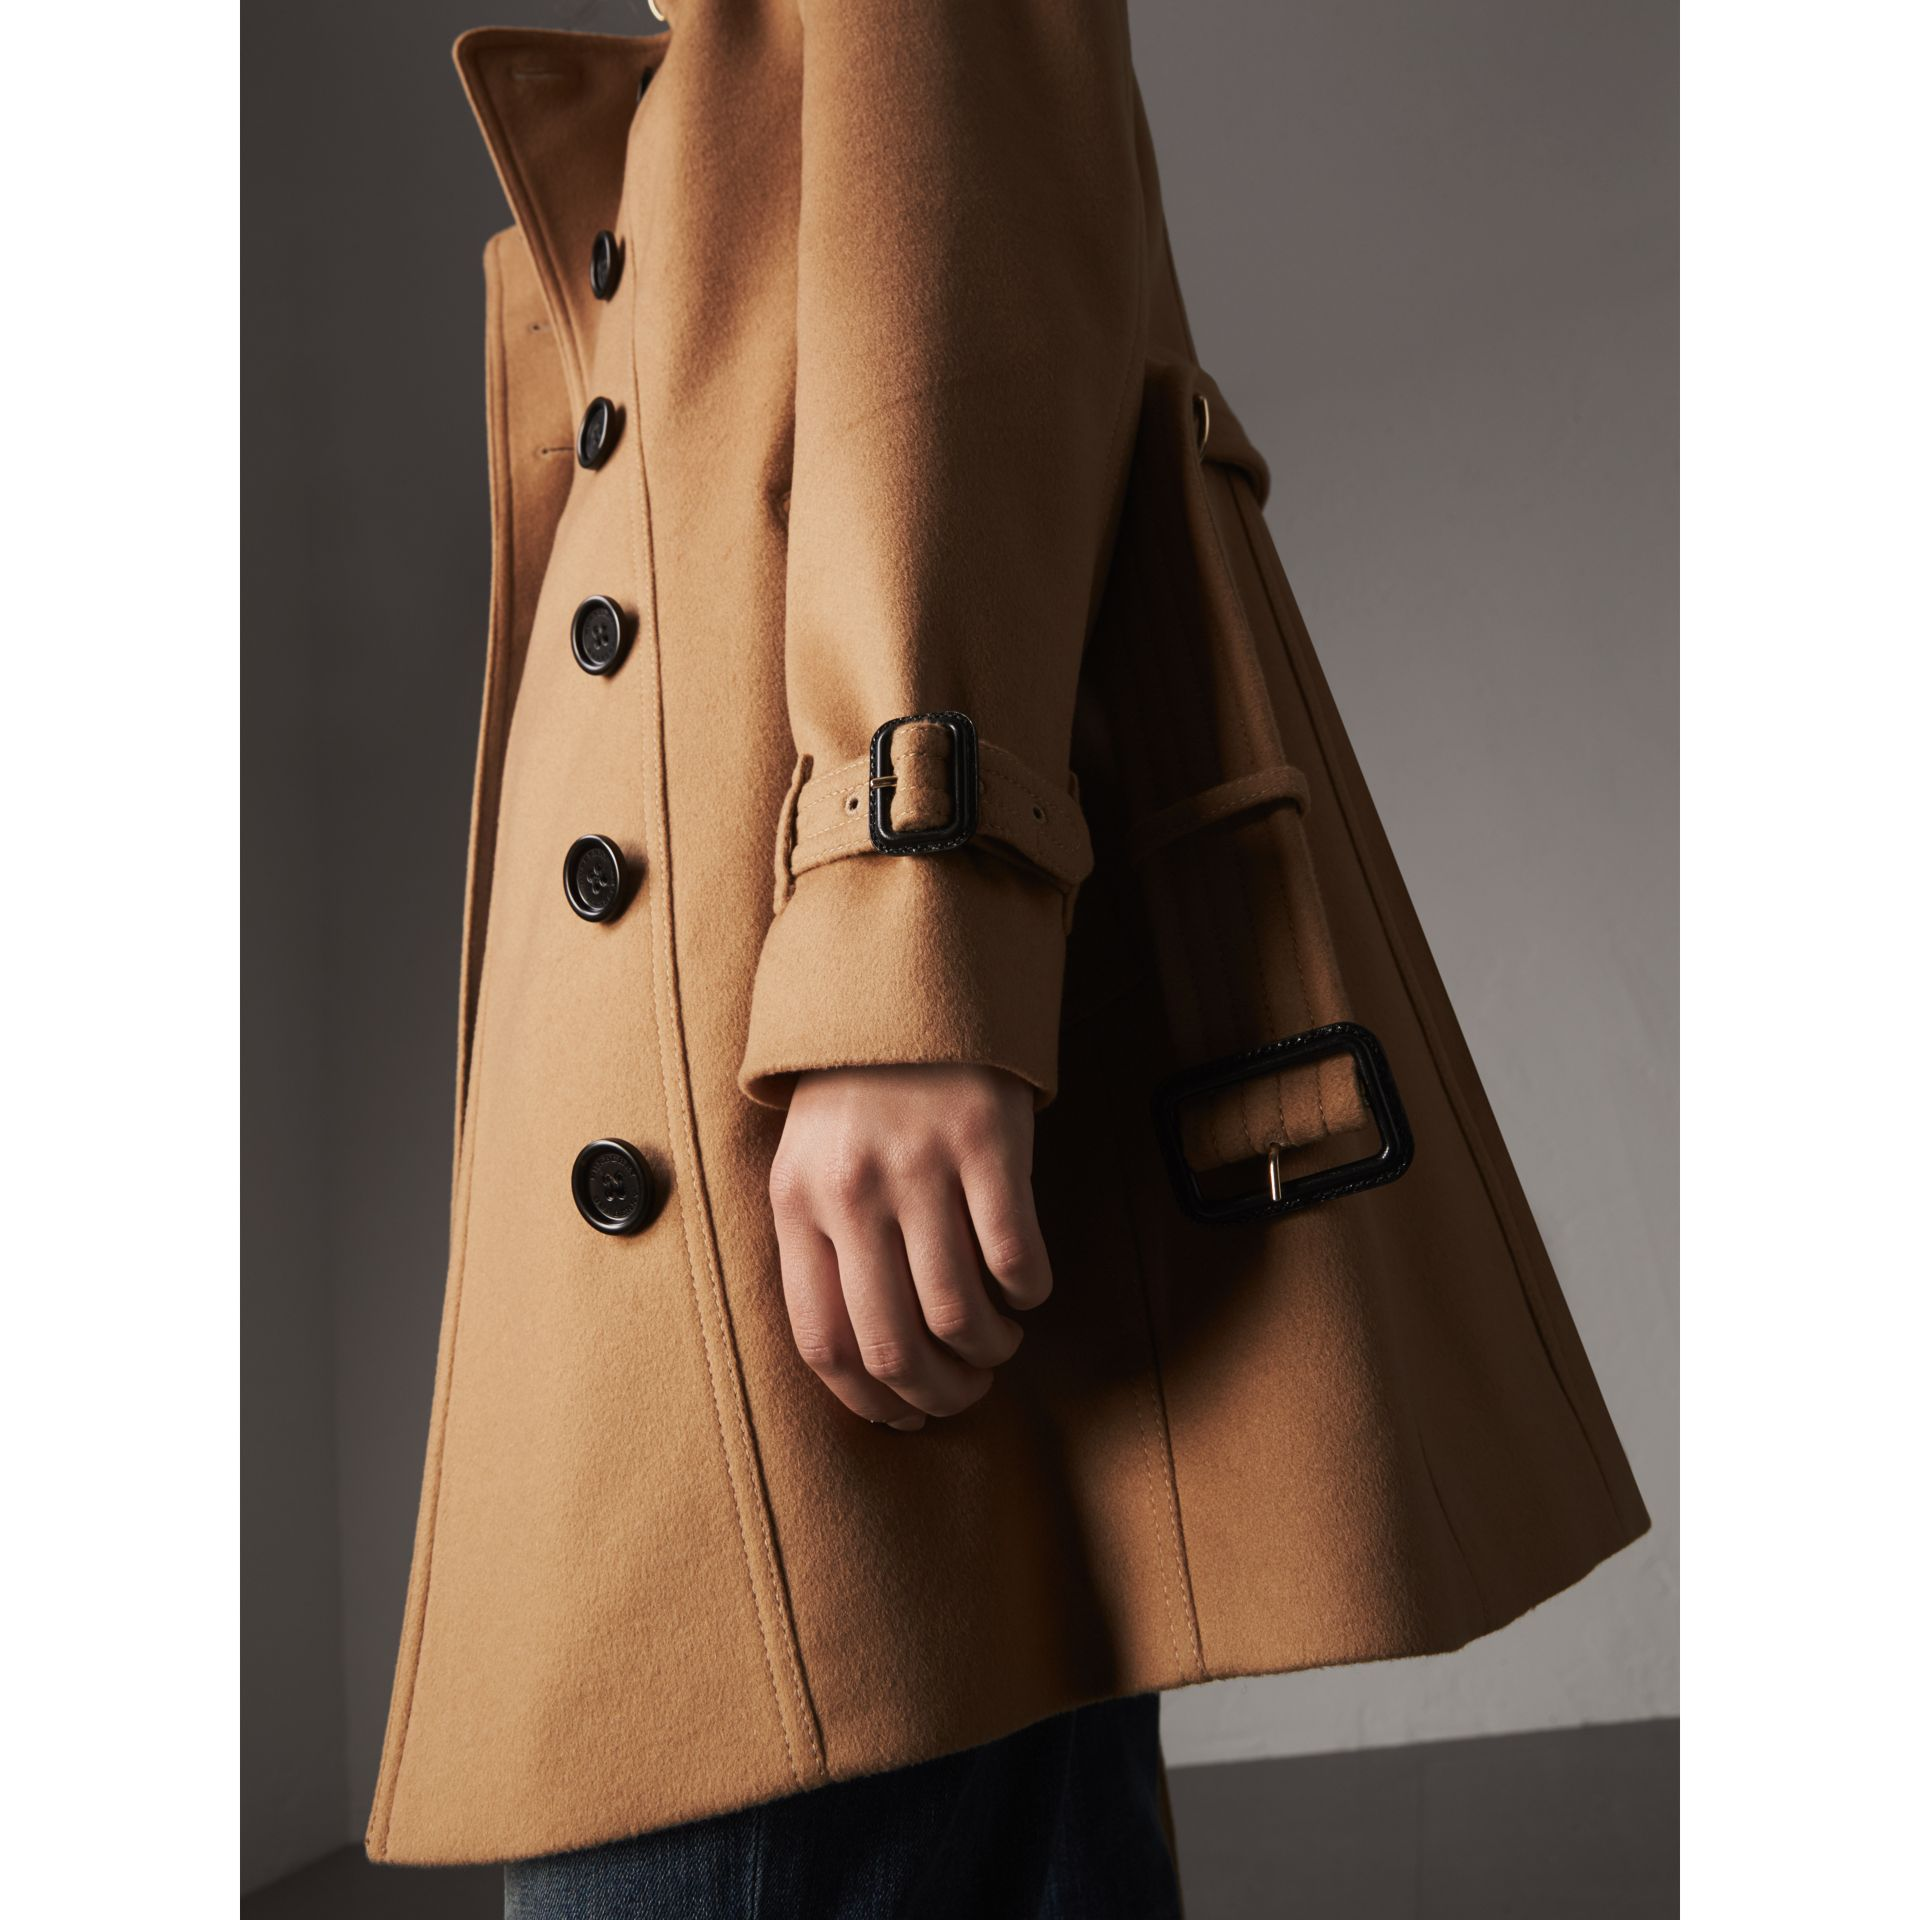 Wool Cashmere Trench Coat with Fur Collar in Camel - Women | Burberry Hong Kong - gallery image 2